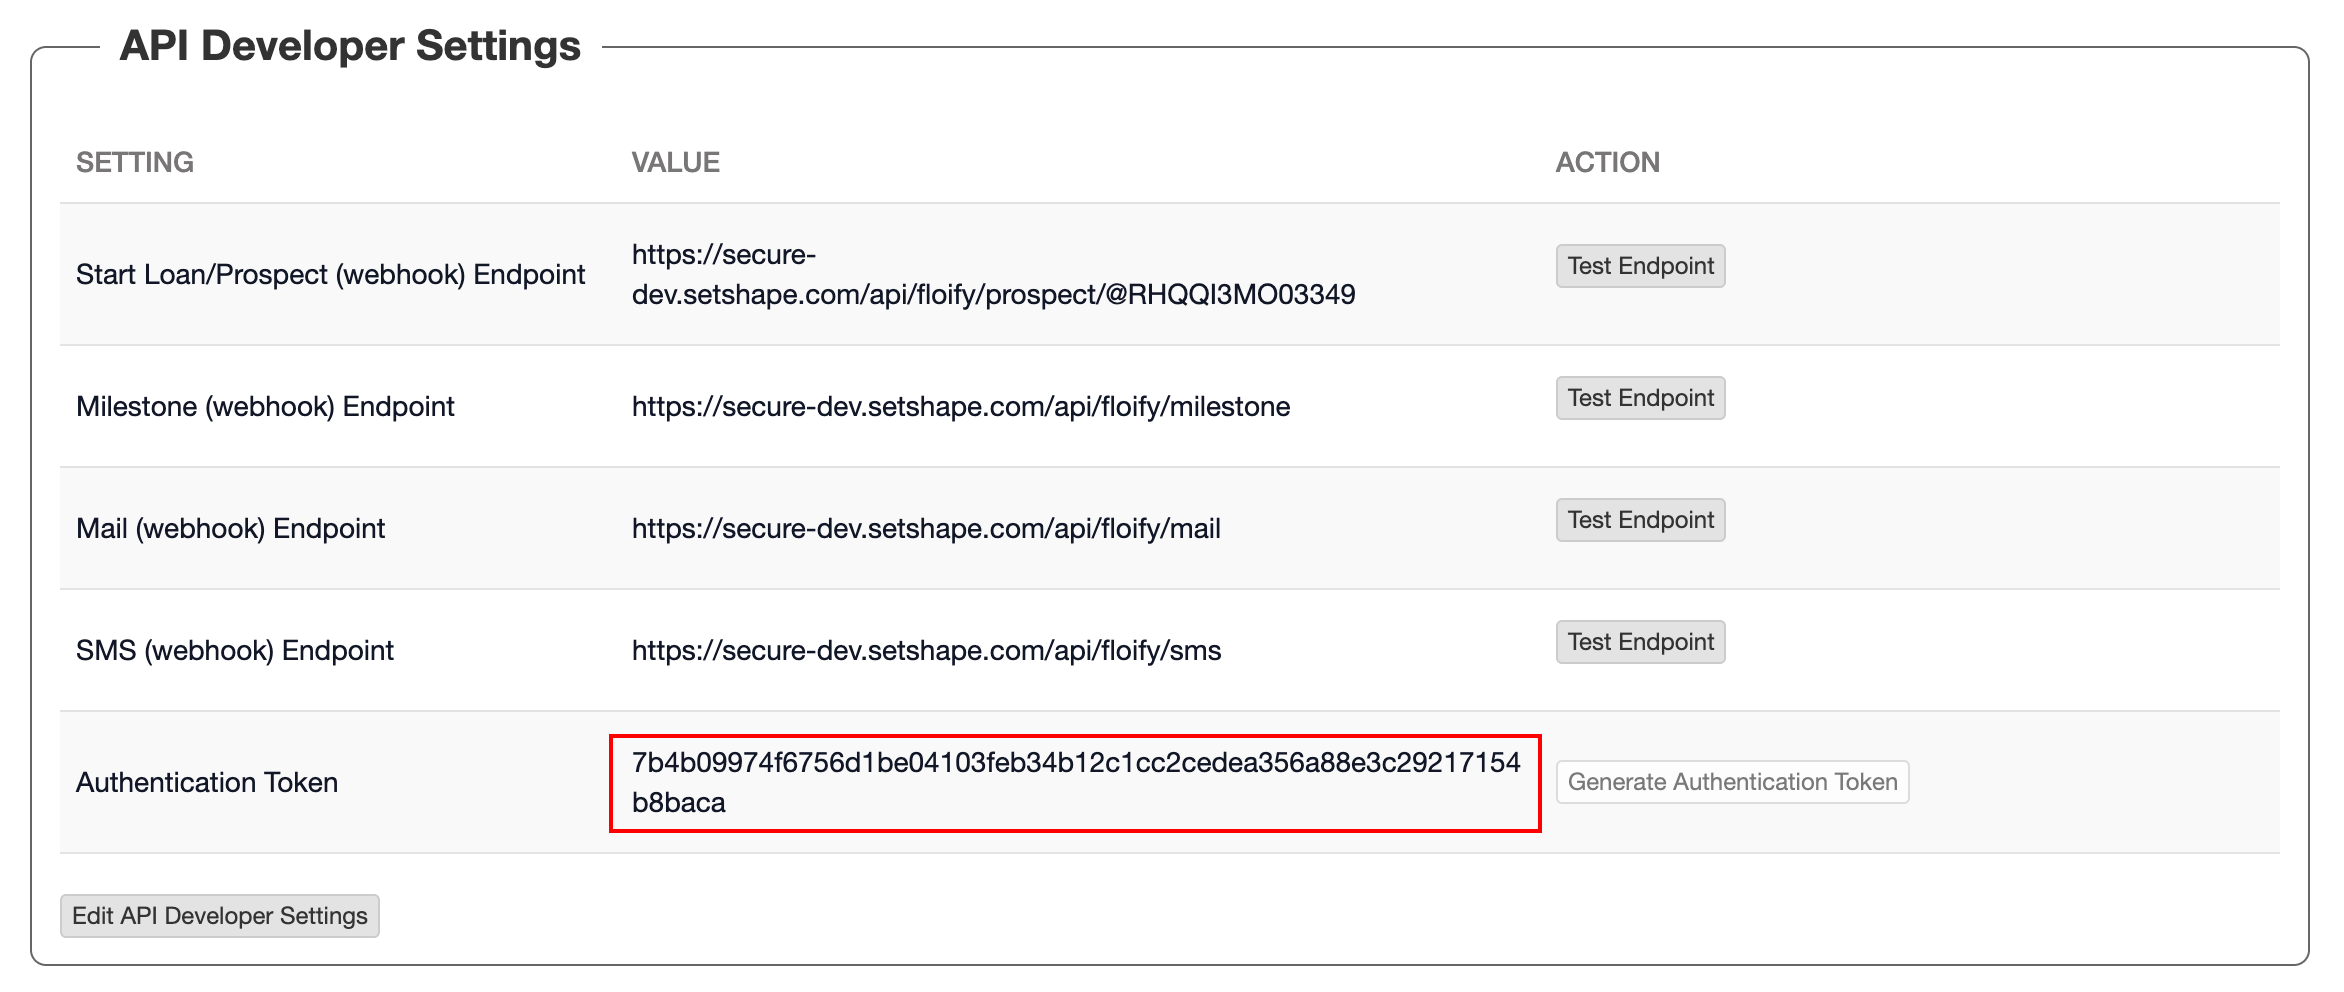 """Step 14:  Scroll down on this page to the """"API Developer Settings"""" section. There, you should find the Authentication Token. If there is no Authentication Token, generate an Authentication Token at this time."""